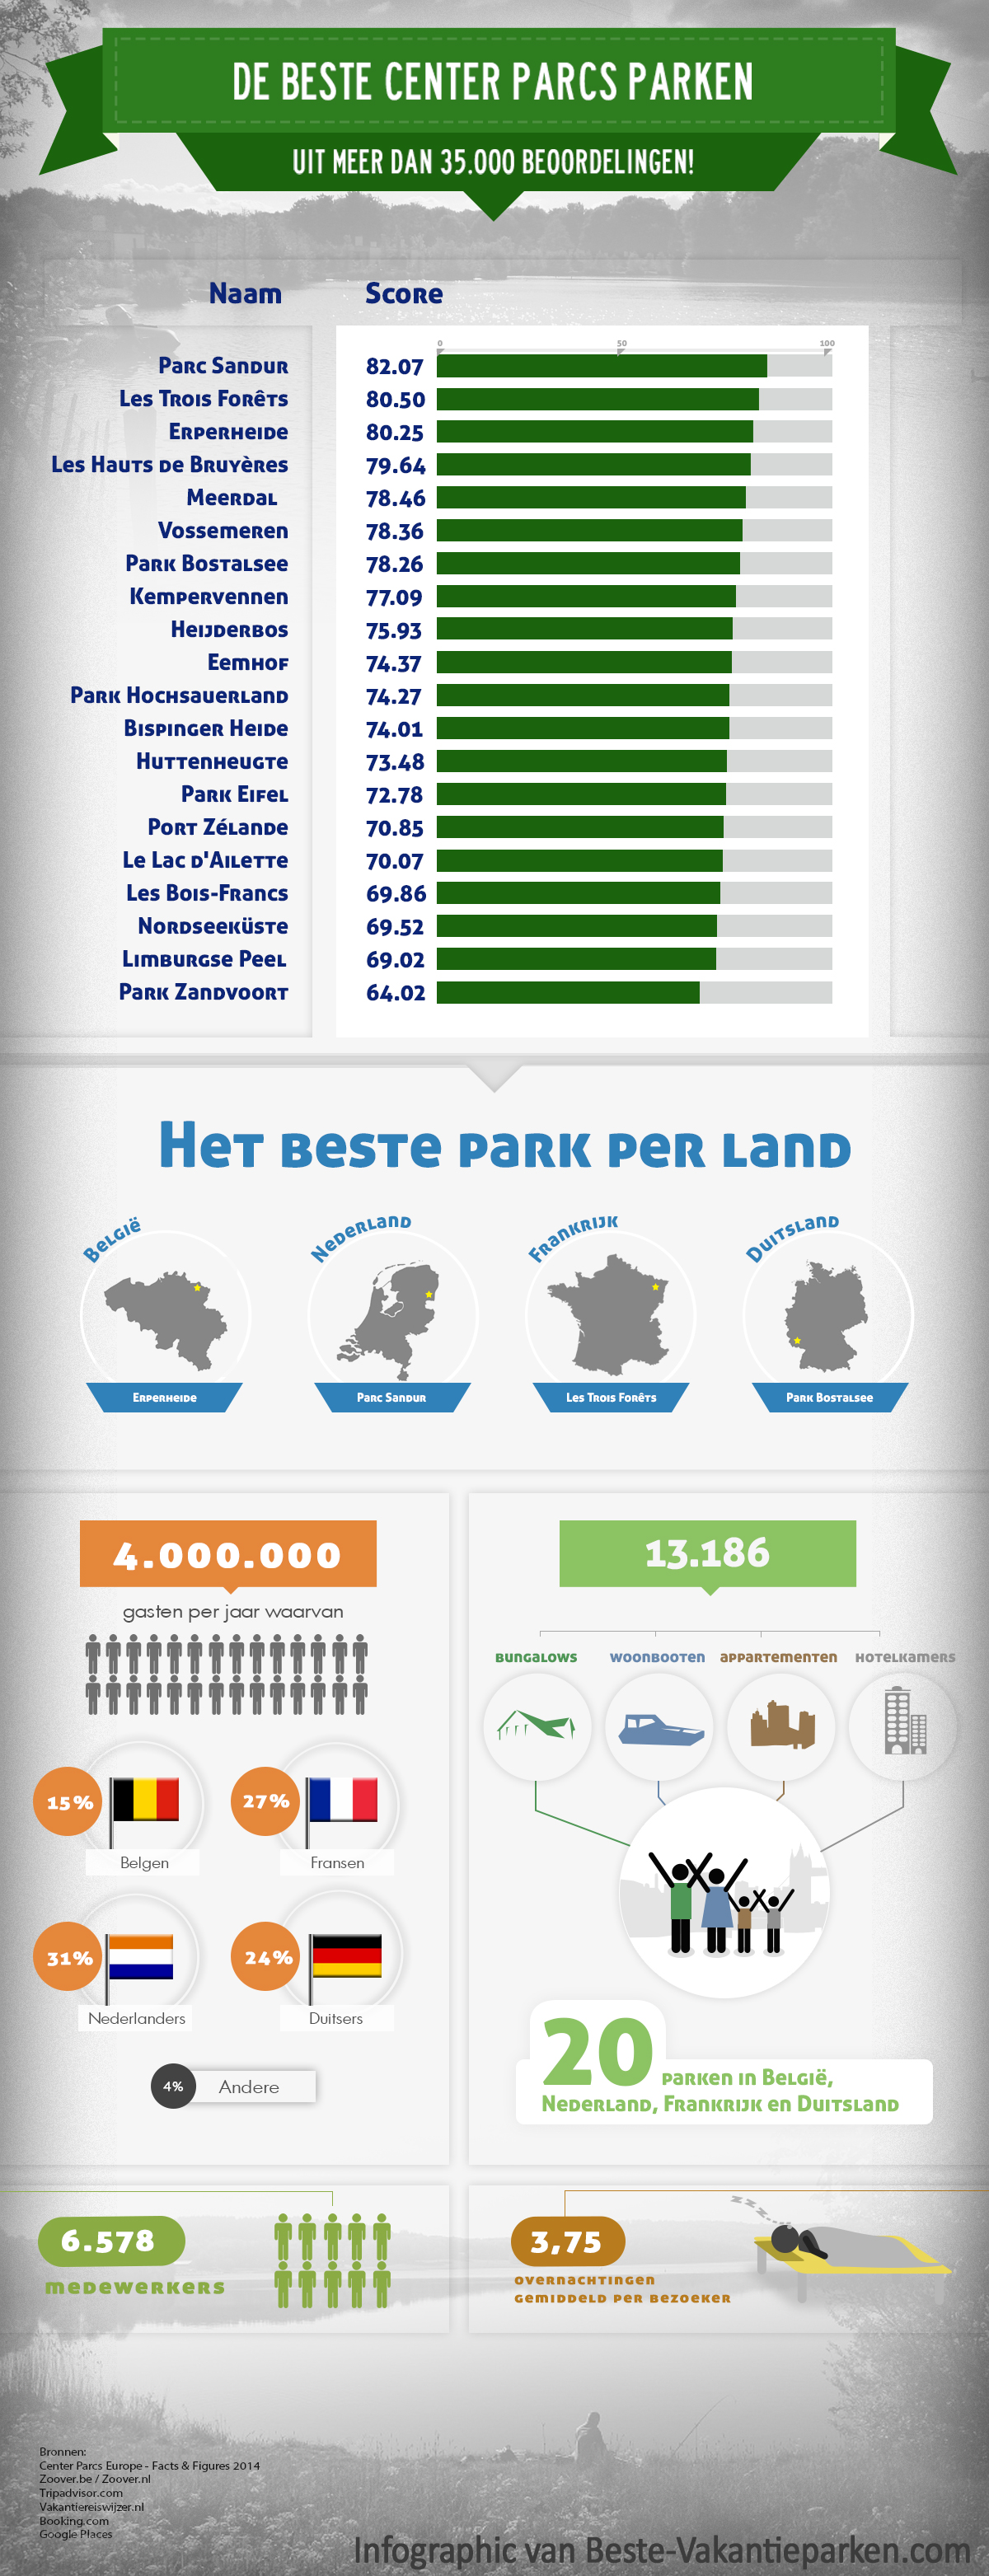 beste Center Parcs parken infographic